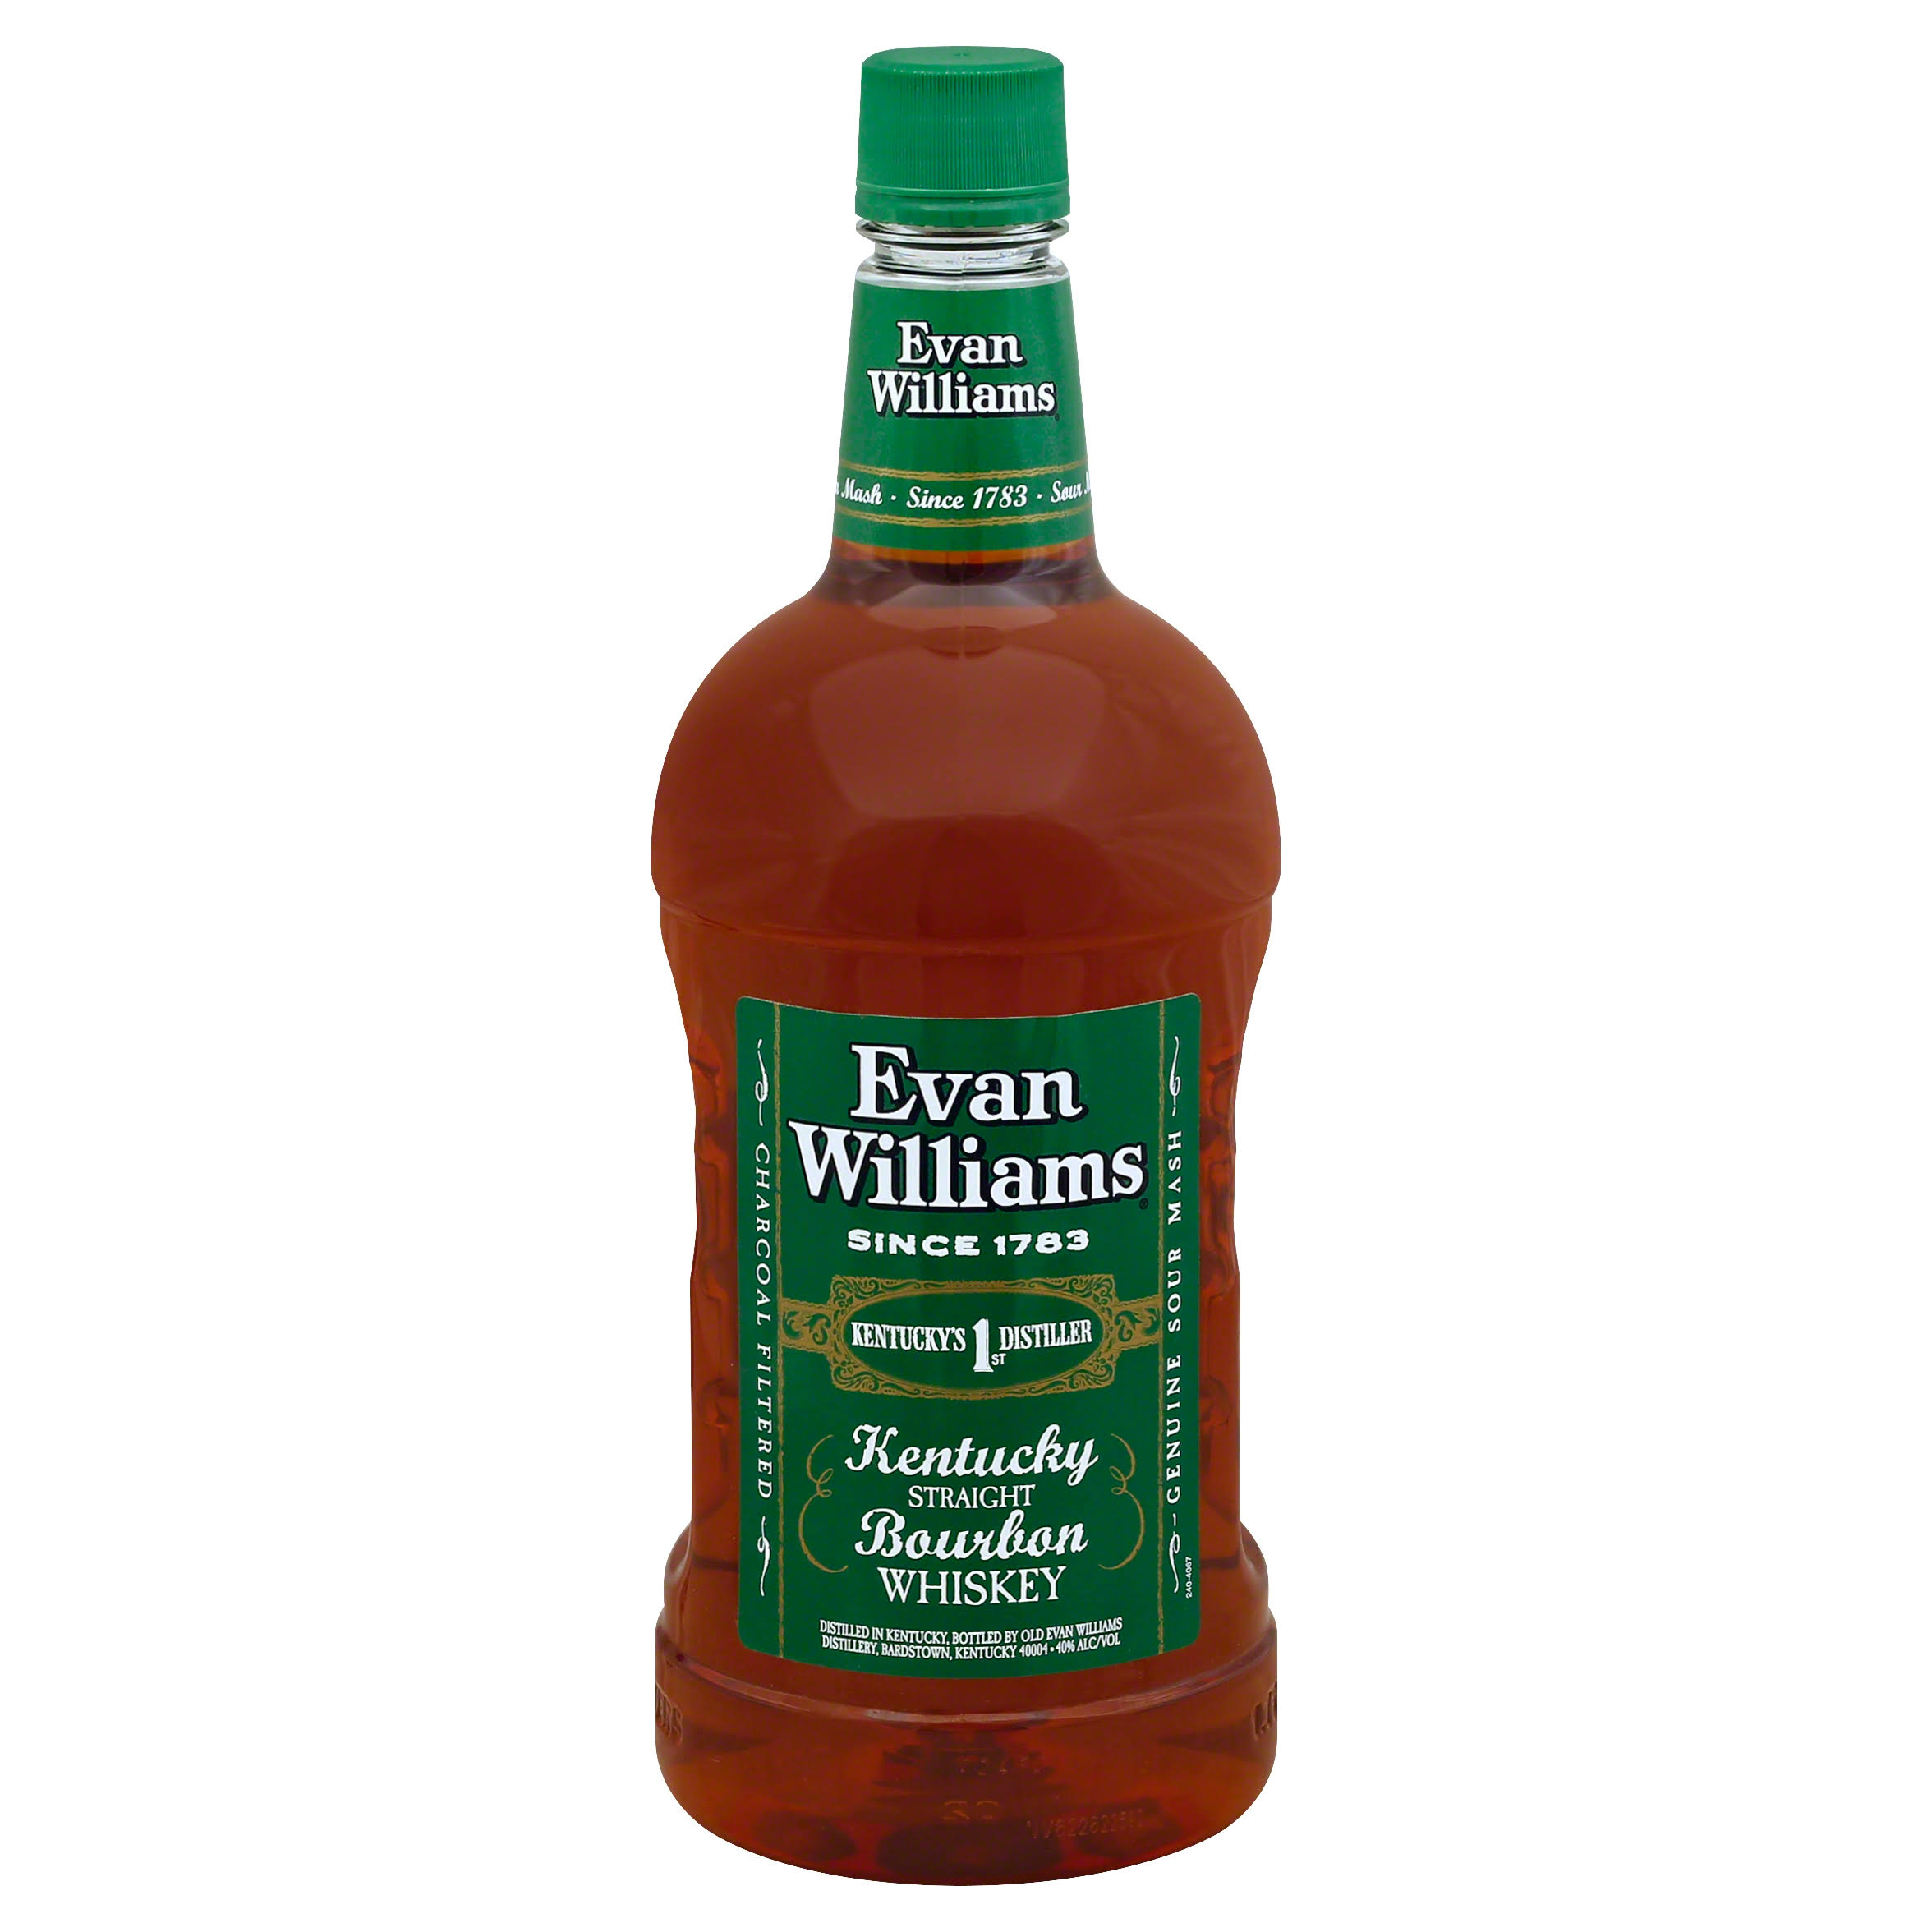 Evan Williams Kentucky Straight Bourbon Whiskey - 1.75 L bottle